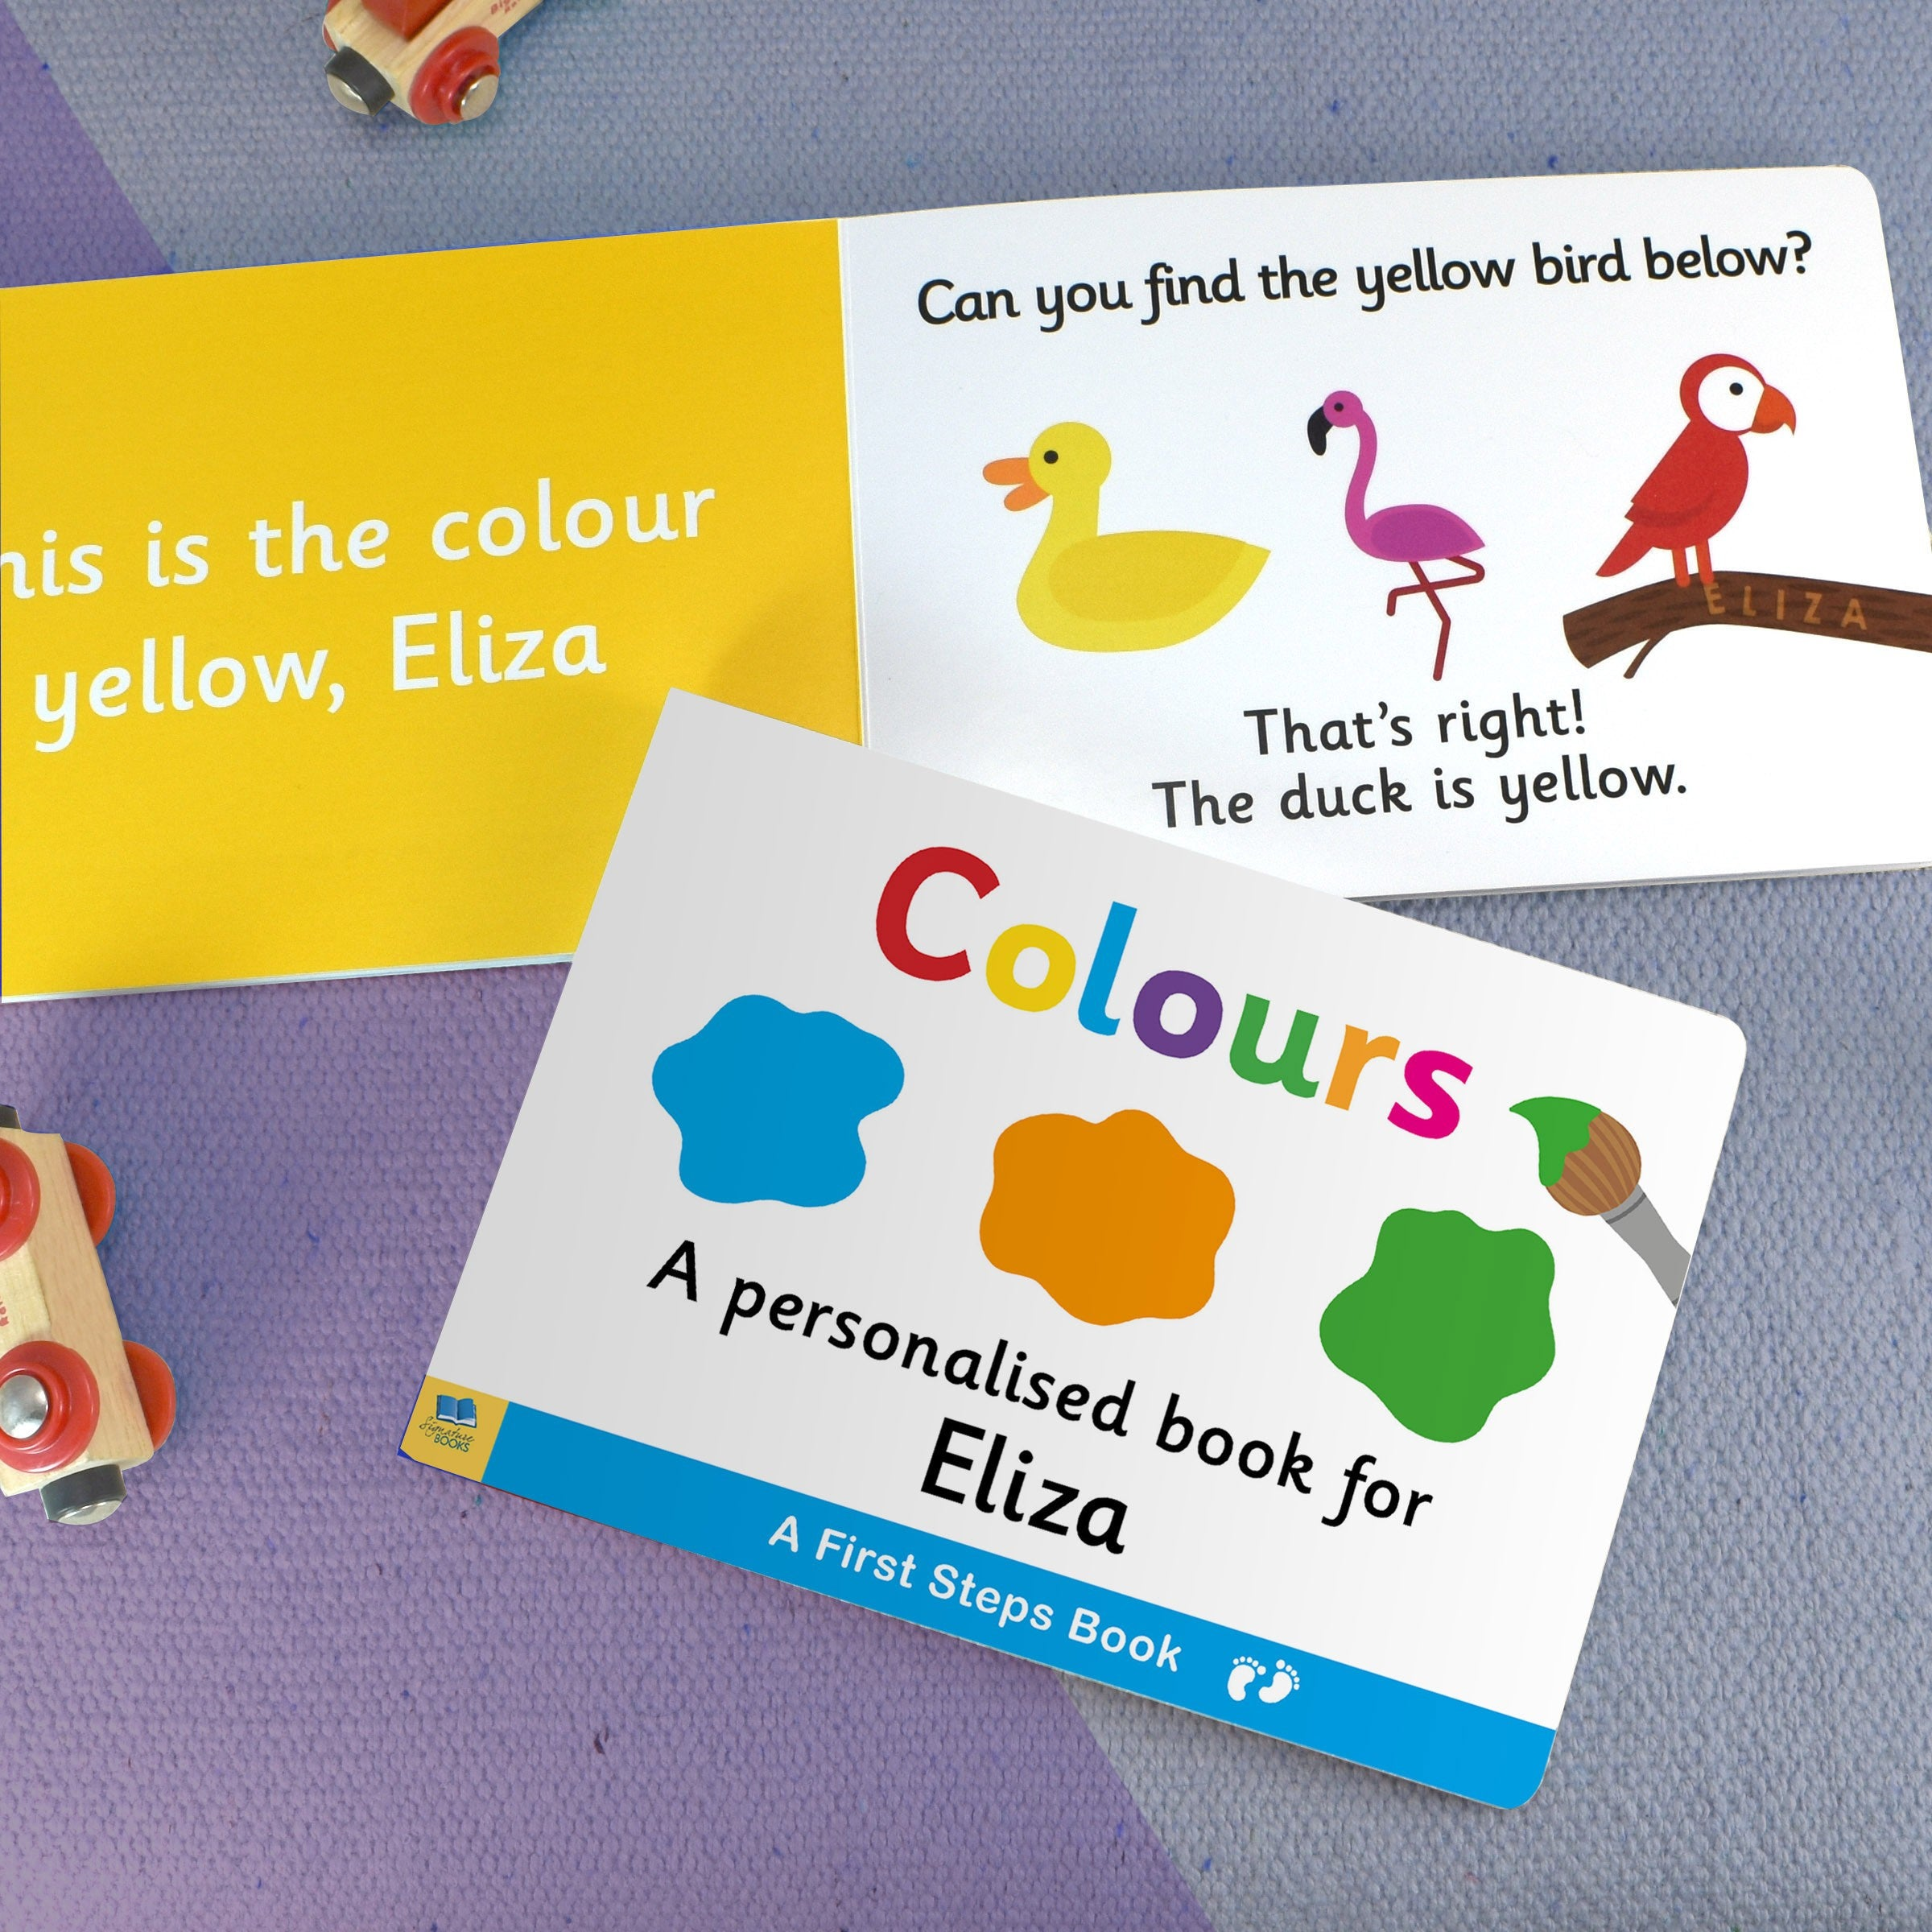 First Steps Colours Board Book for Toddlers, Art & Craft Kits by Low Cost Gifts